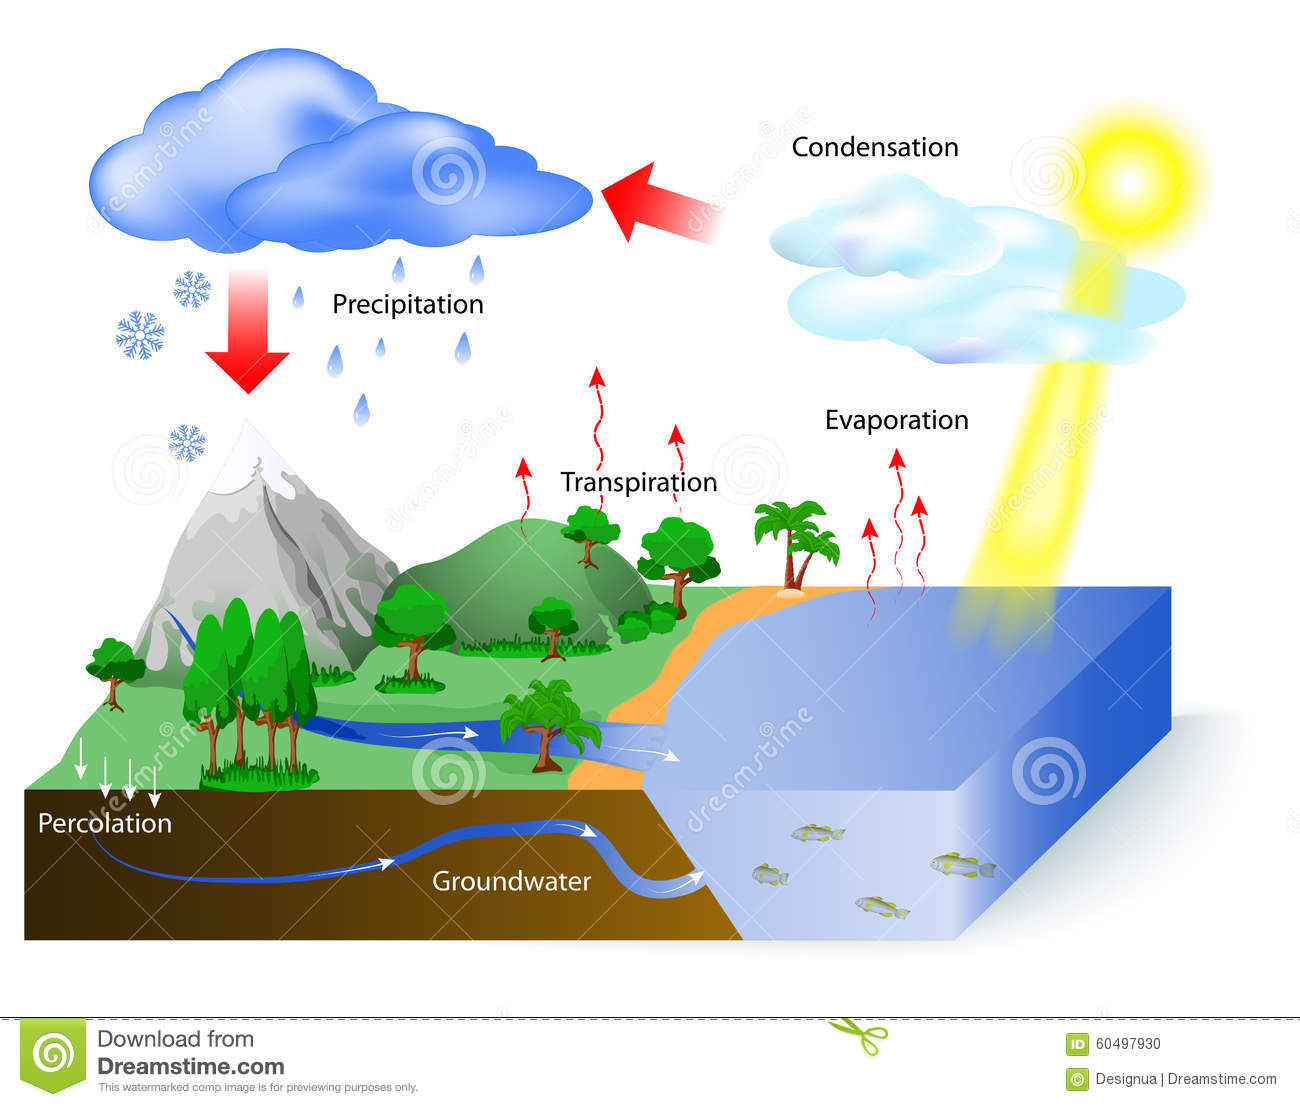 hight resolution of water cycle diagram the sun which drives the water cycle heats water in oceans and seas water evaporates as water vapor into the air labeled